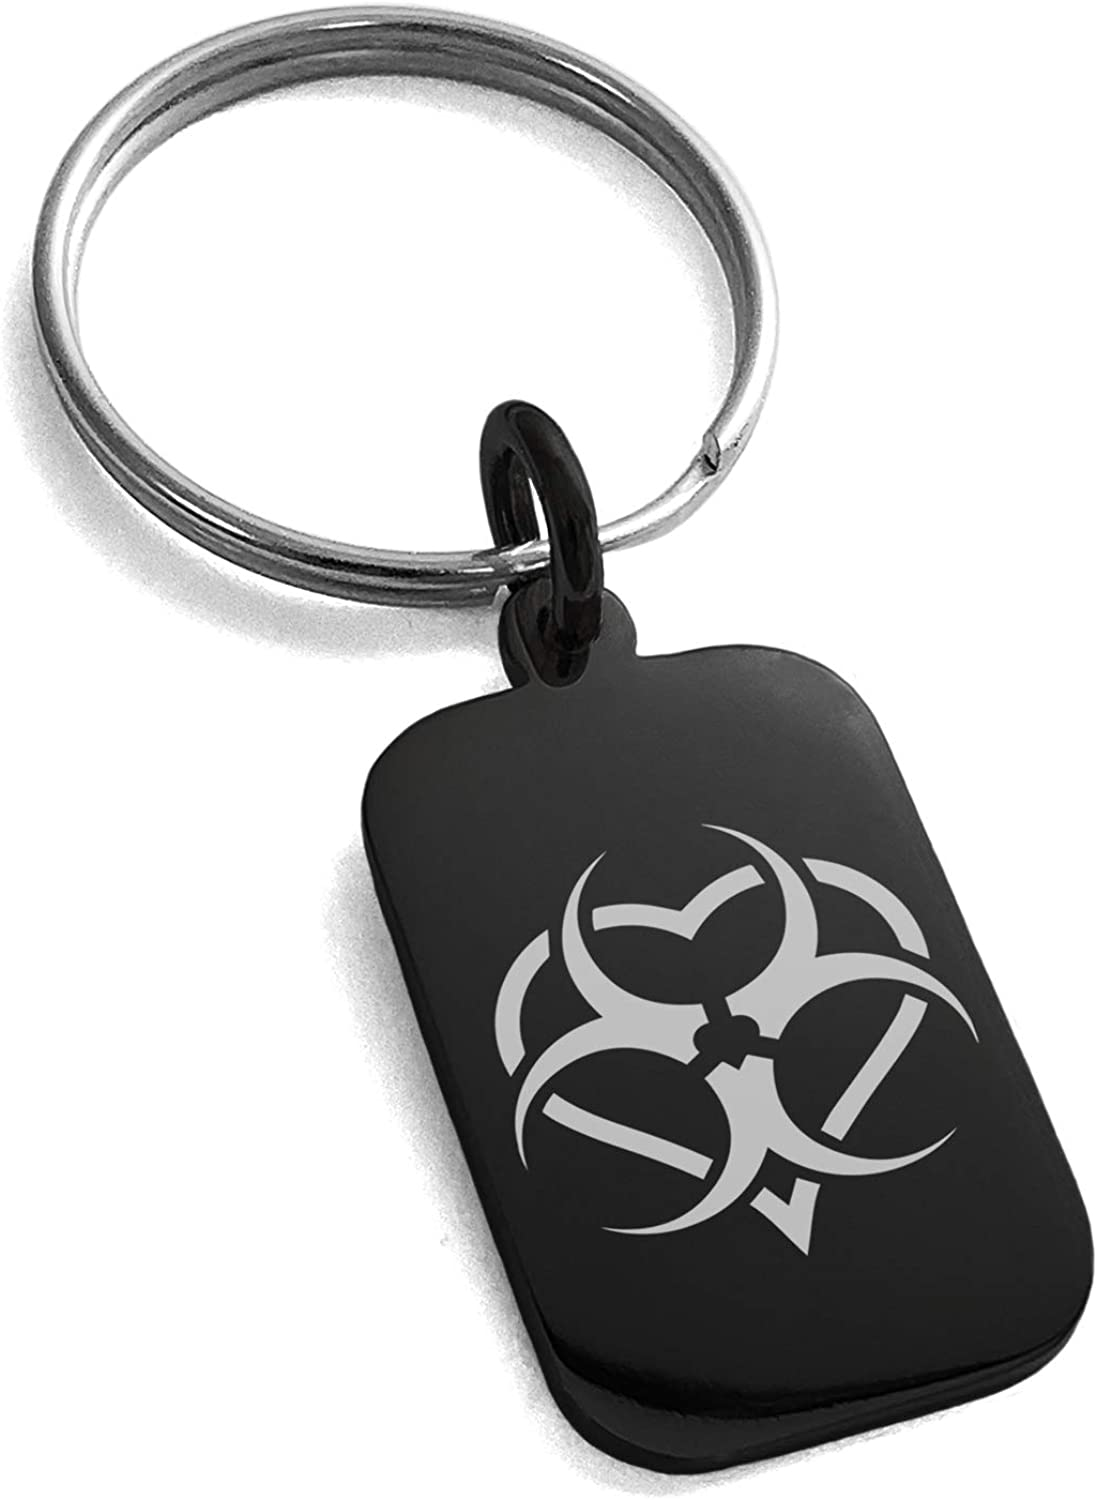 Tioneer Black Stainless Steel Biohazard Love Heart Symbol Small Rectangle Dog Tag Charm Keychain Keyring